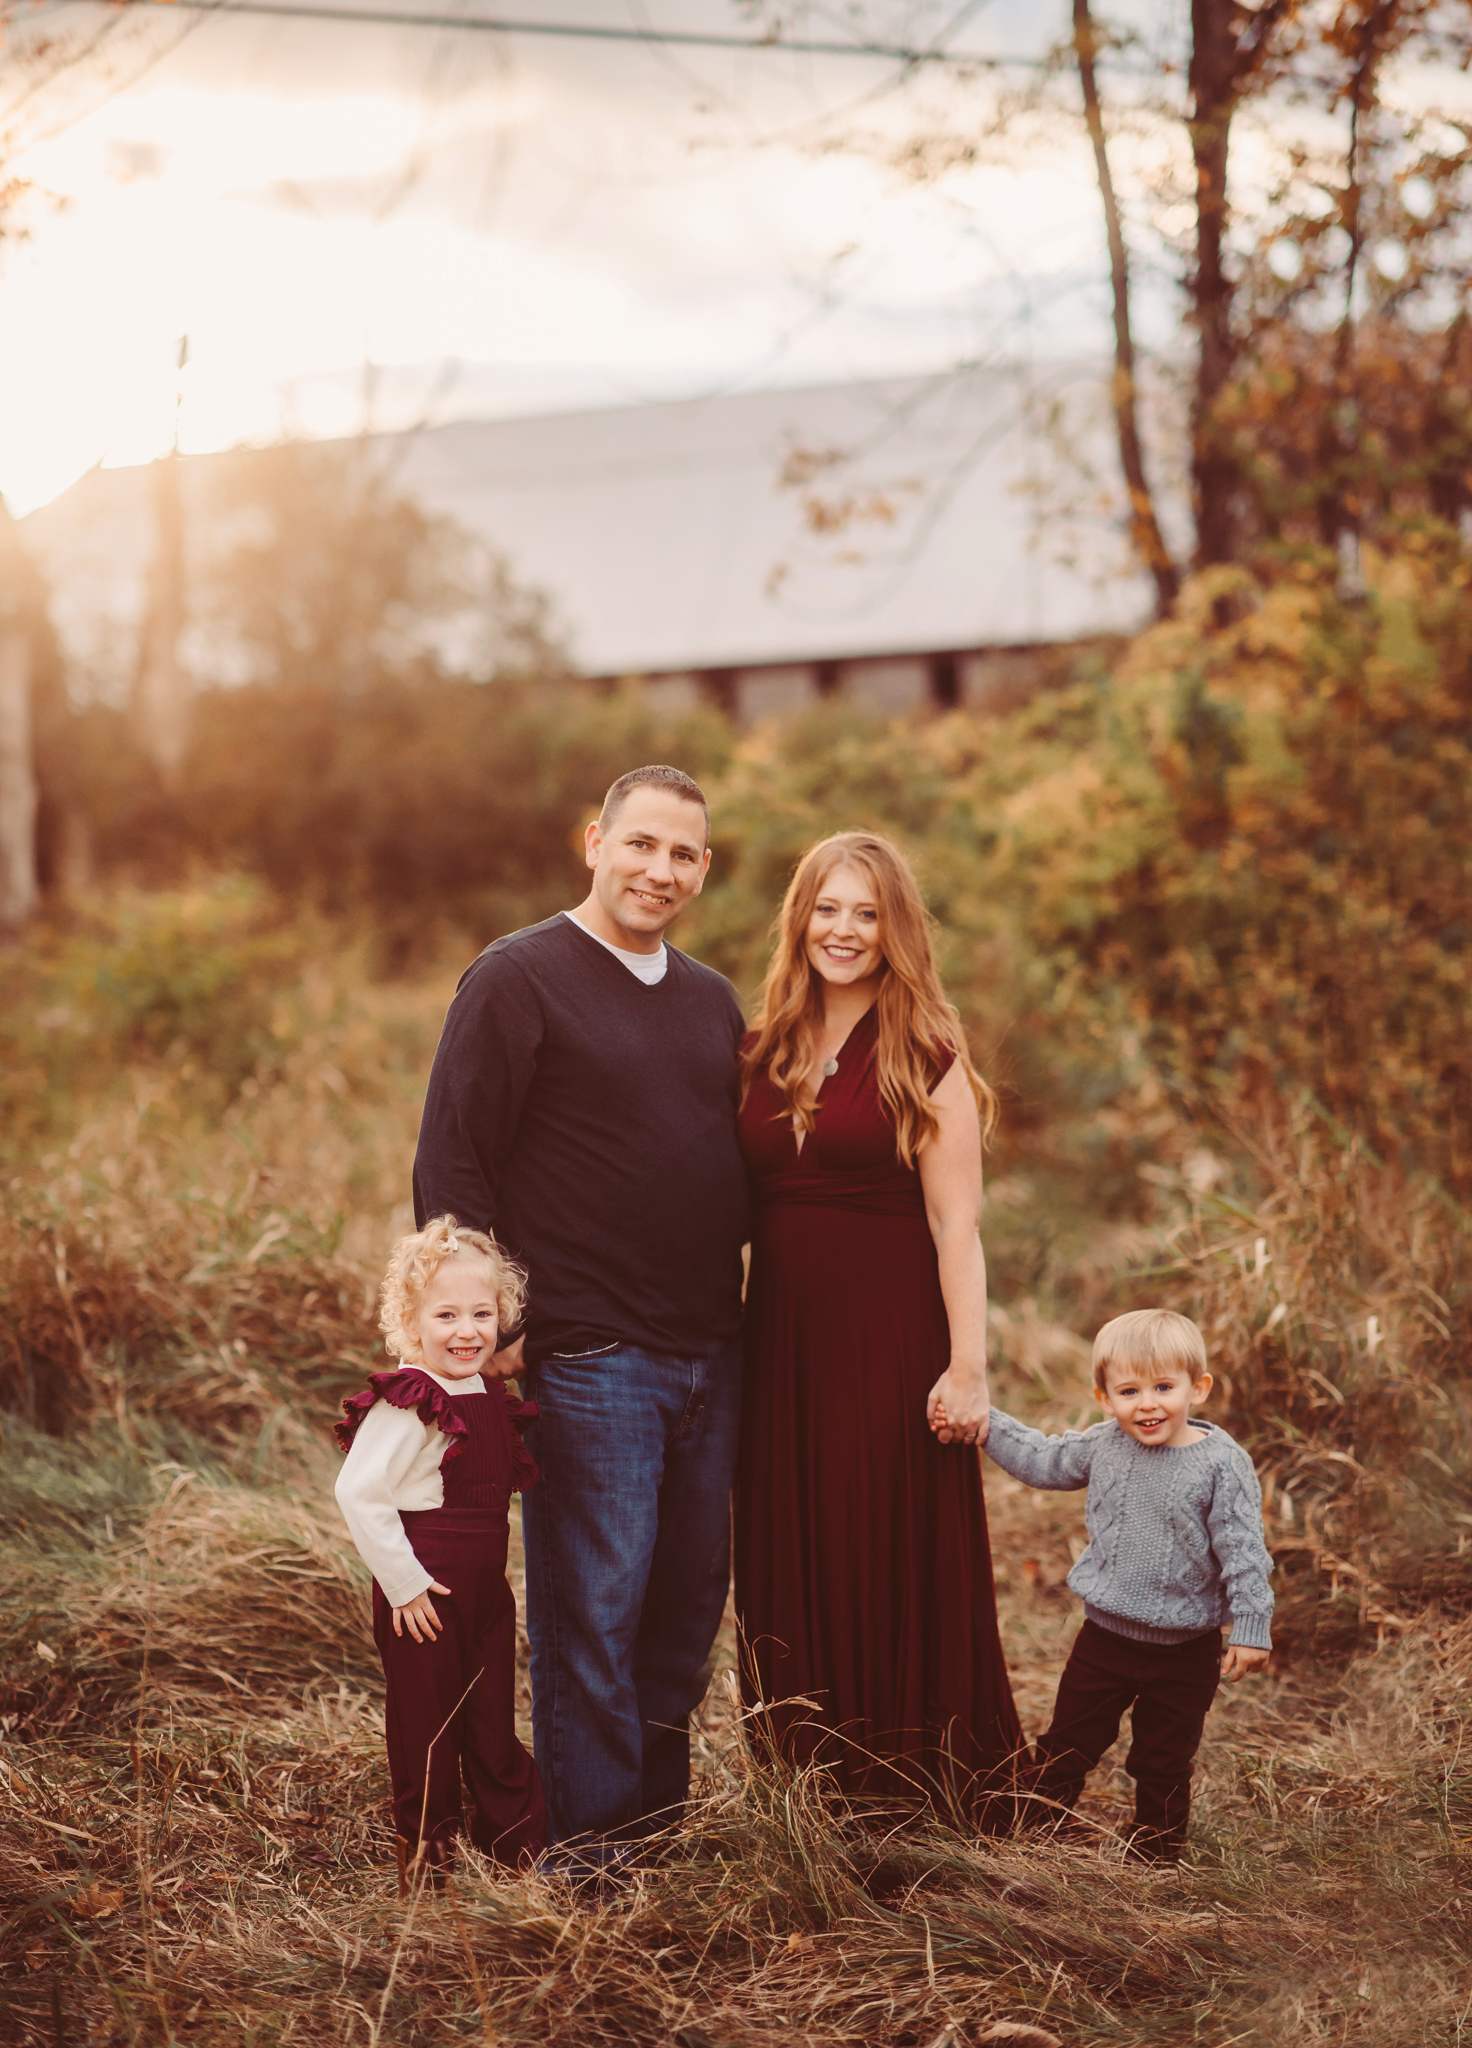 New England Based Award-Winning Family Photographer | Golden Aura Photography